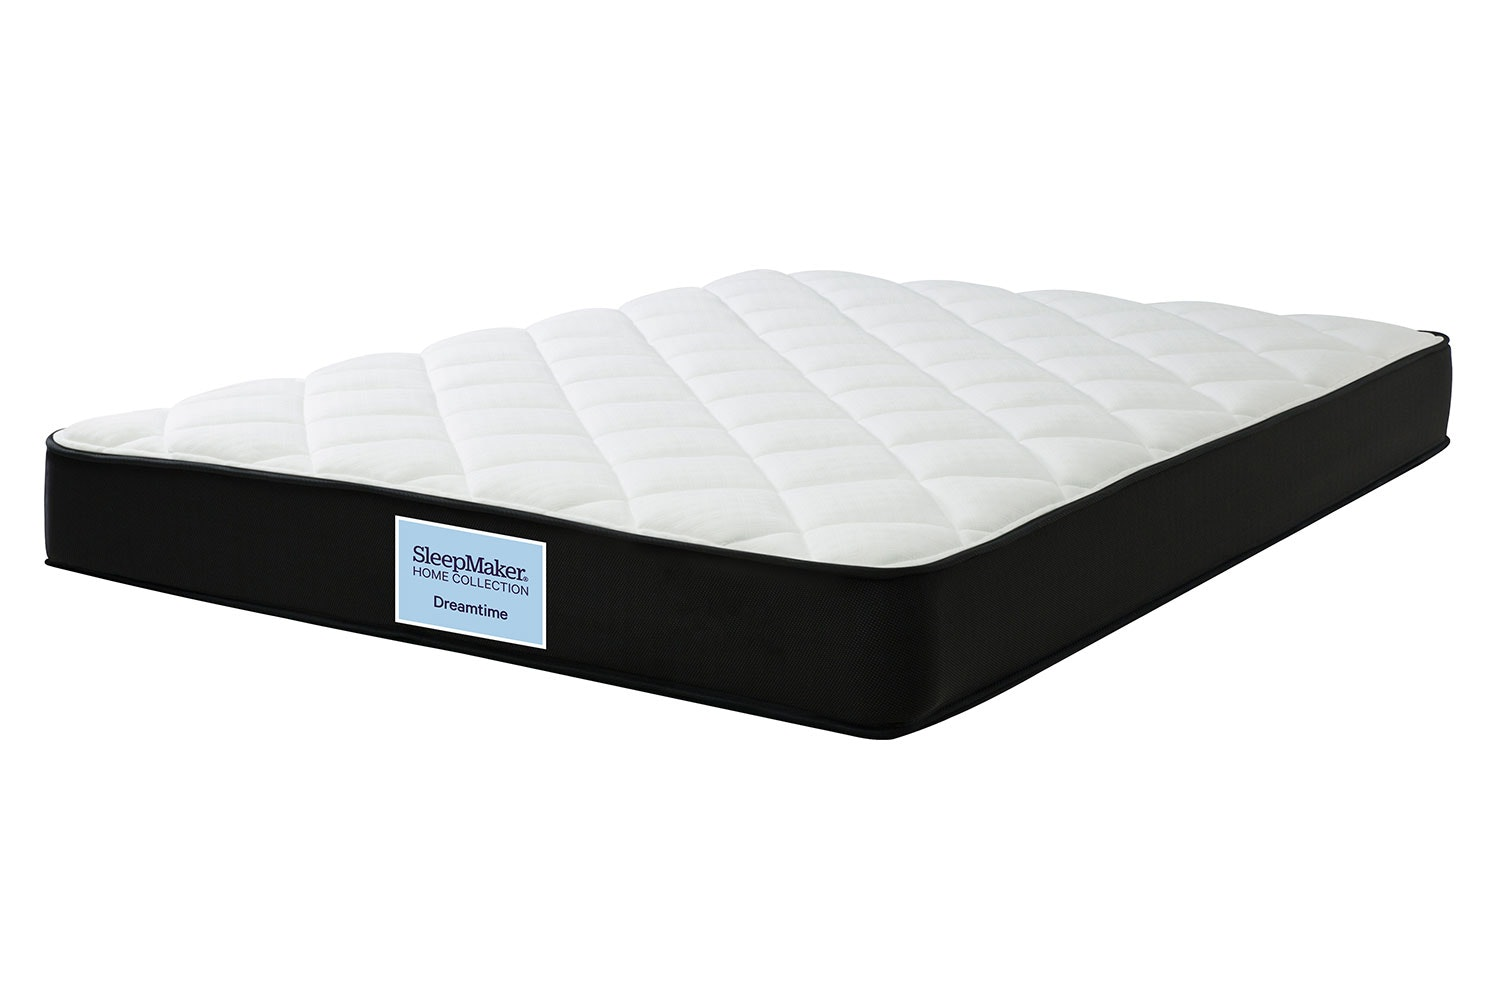 Dreamtime Single Mattress by Sleepmaker